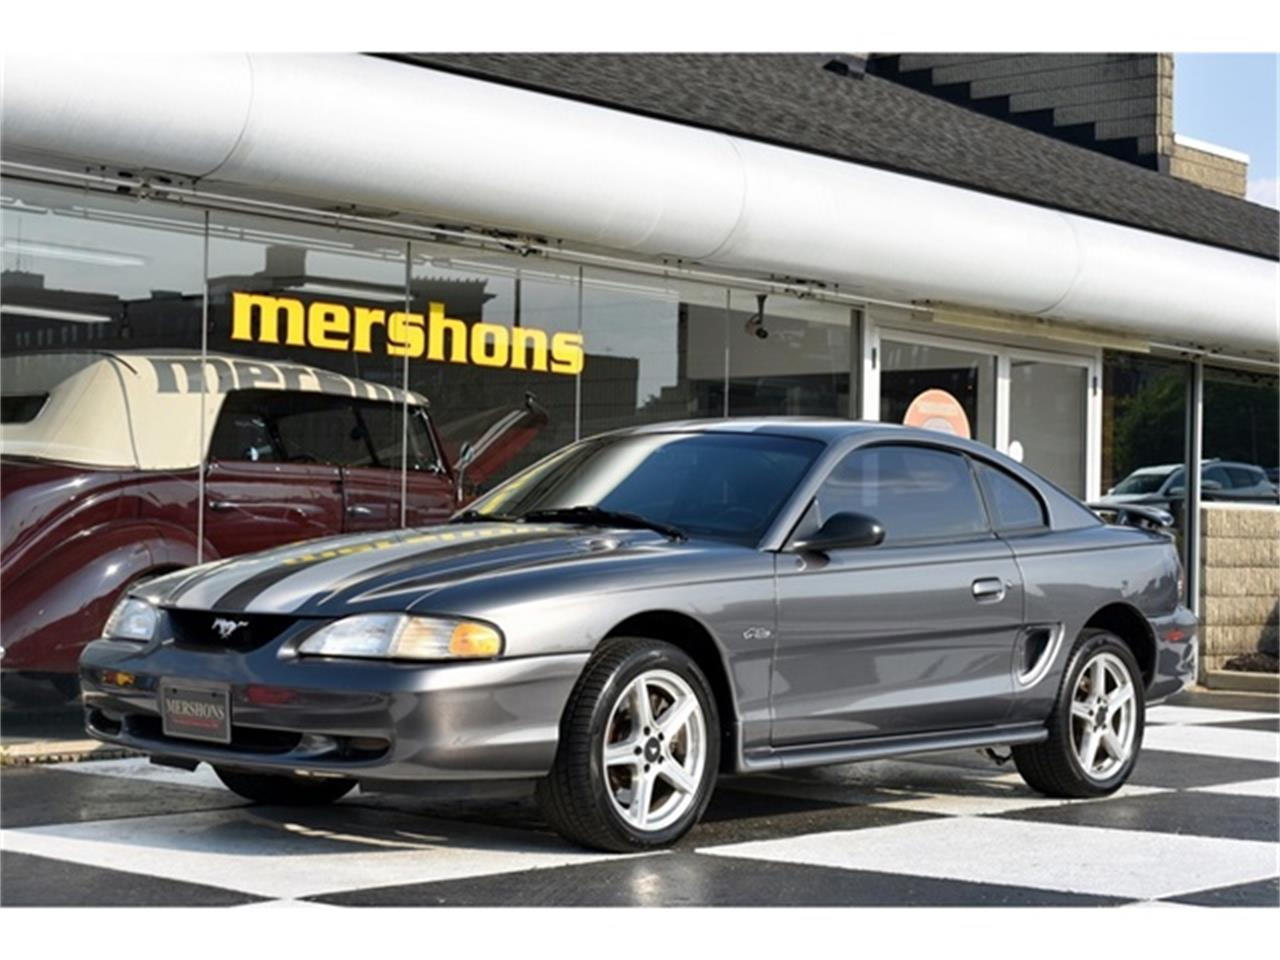 Large picture of 98 mustang gt ofxi